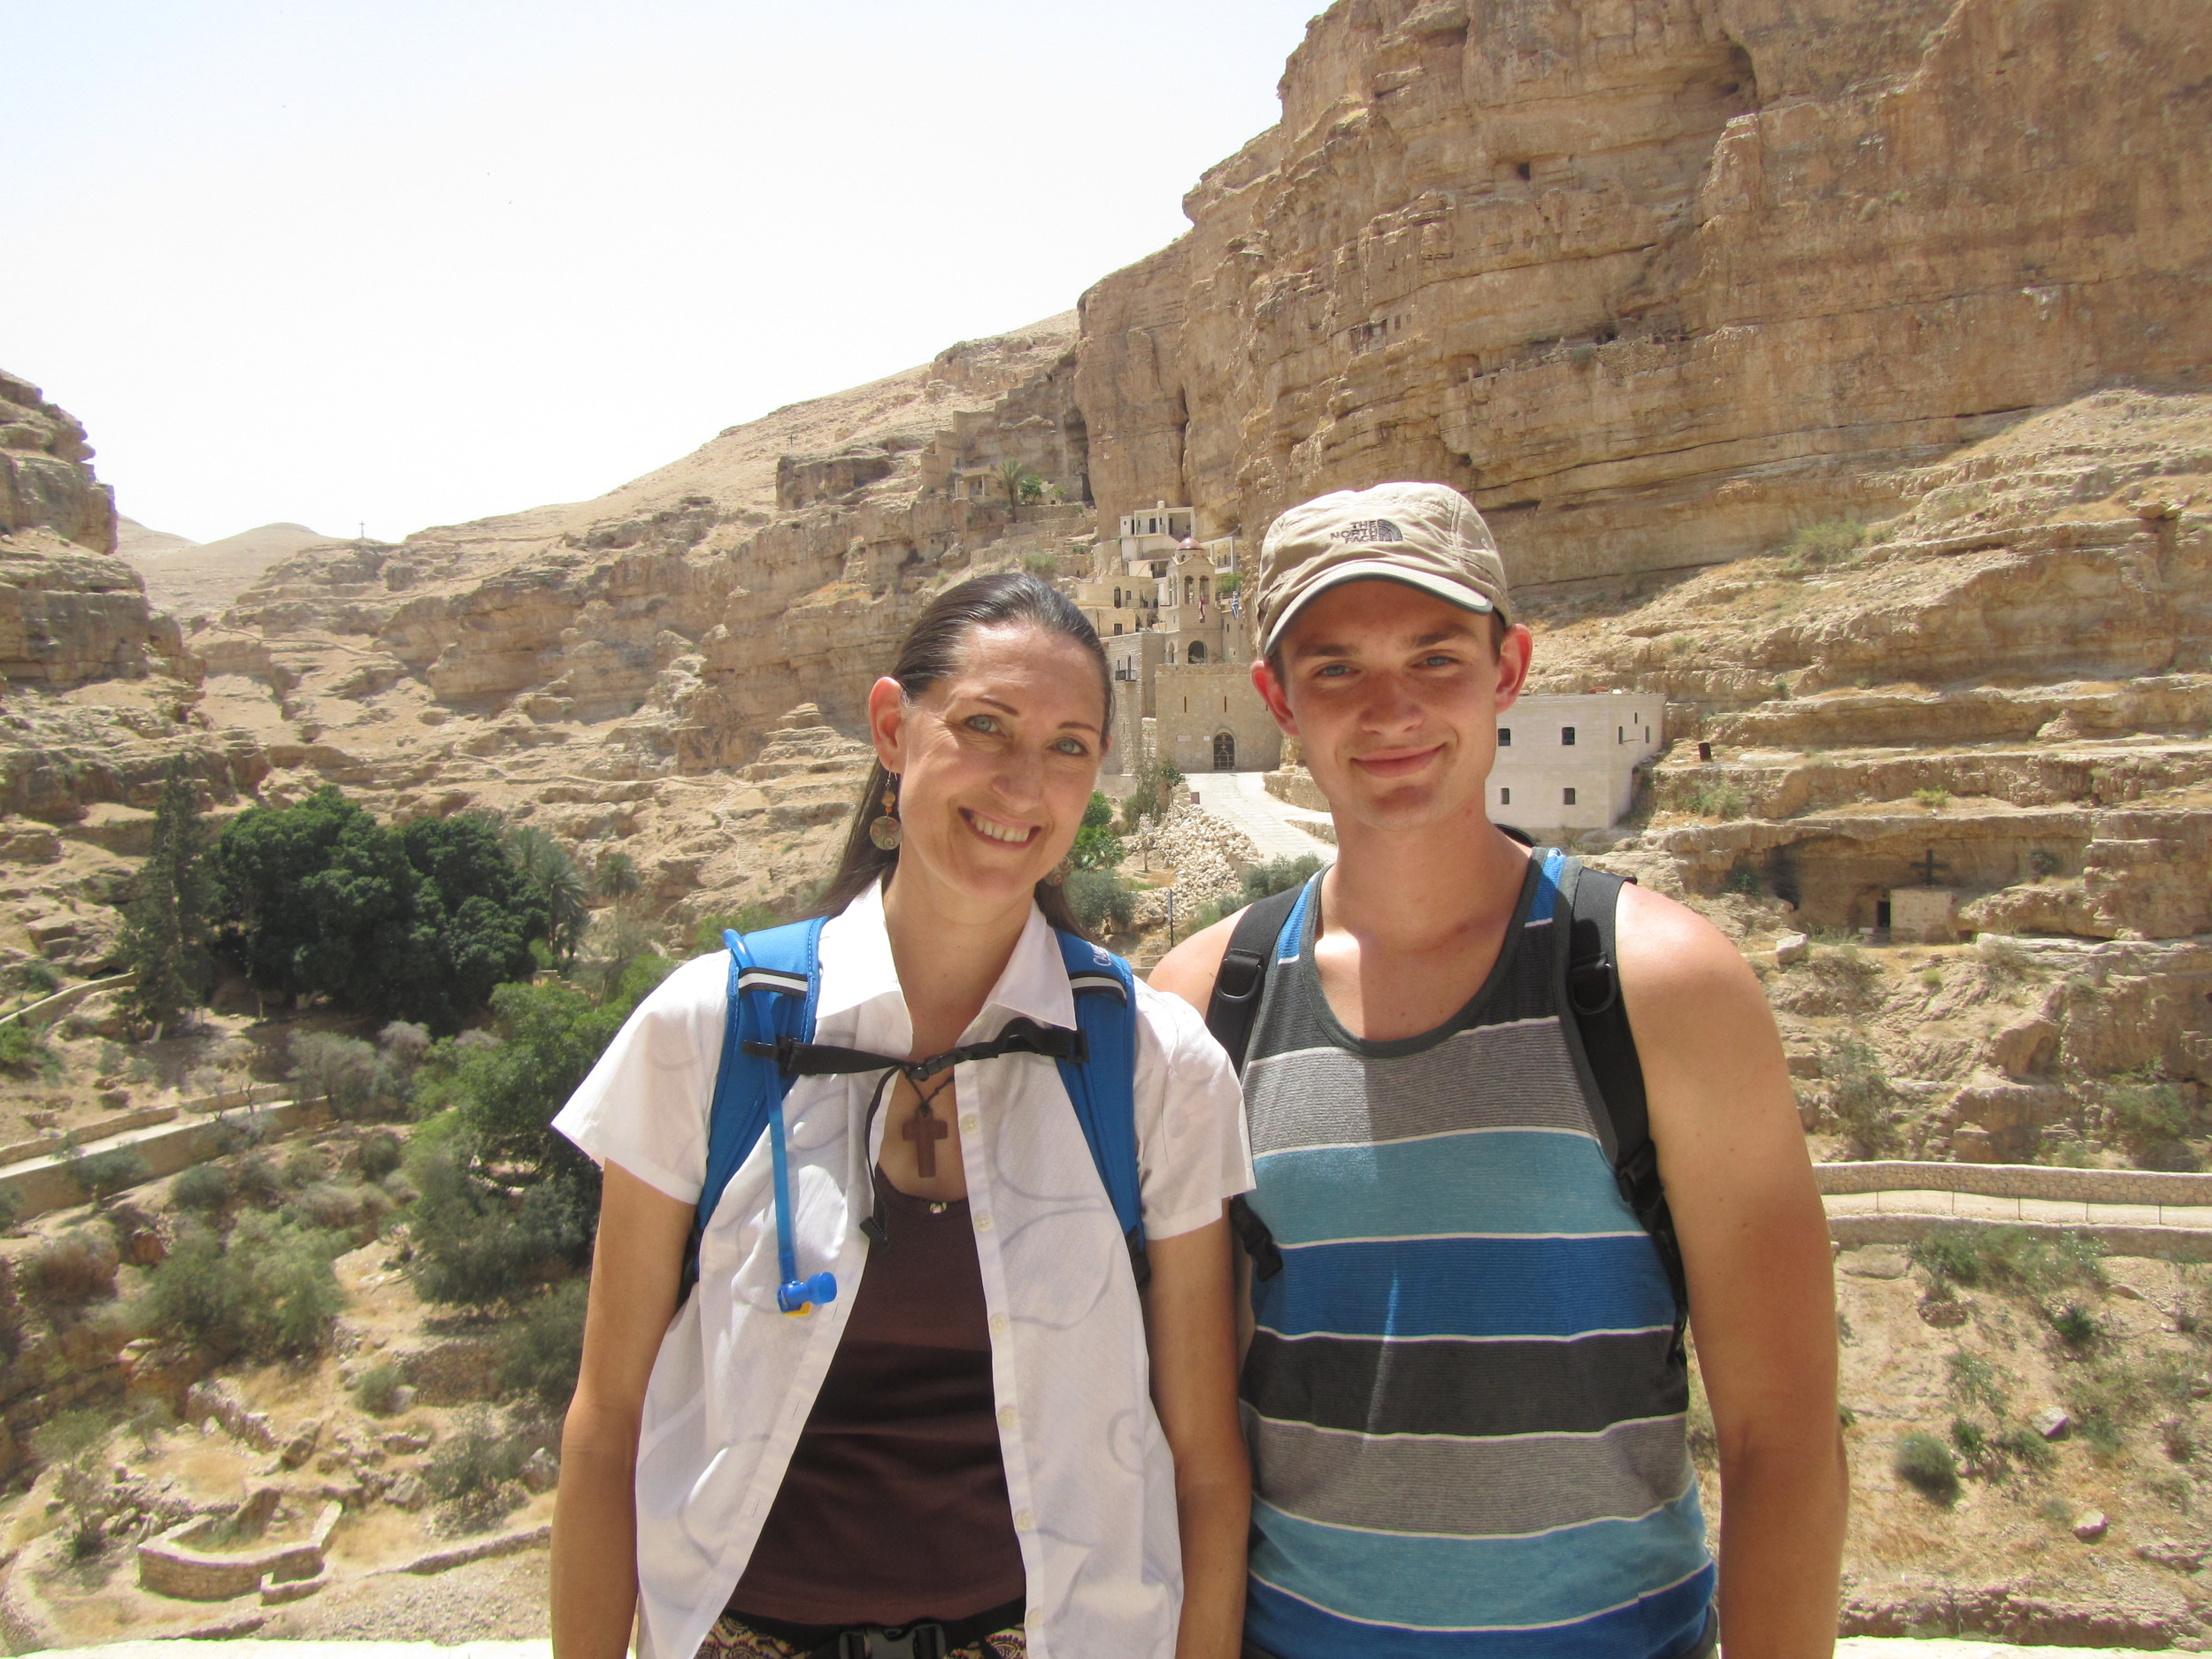 Pam and Luke in Wadi Kelt with St. George's Monastery in the background